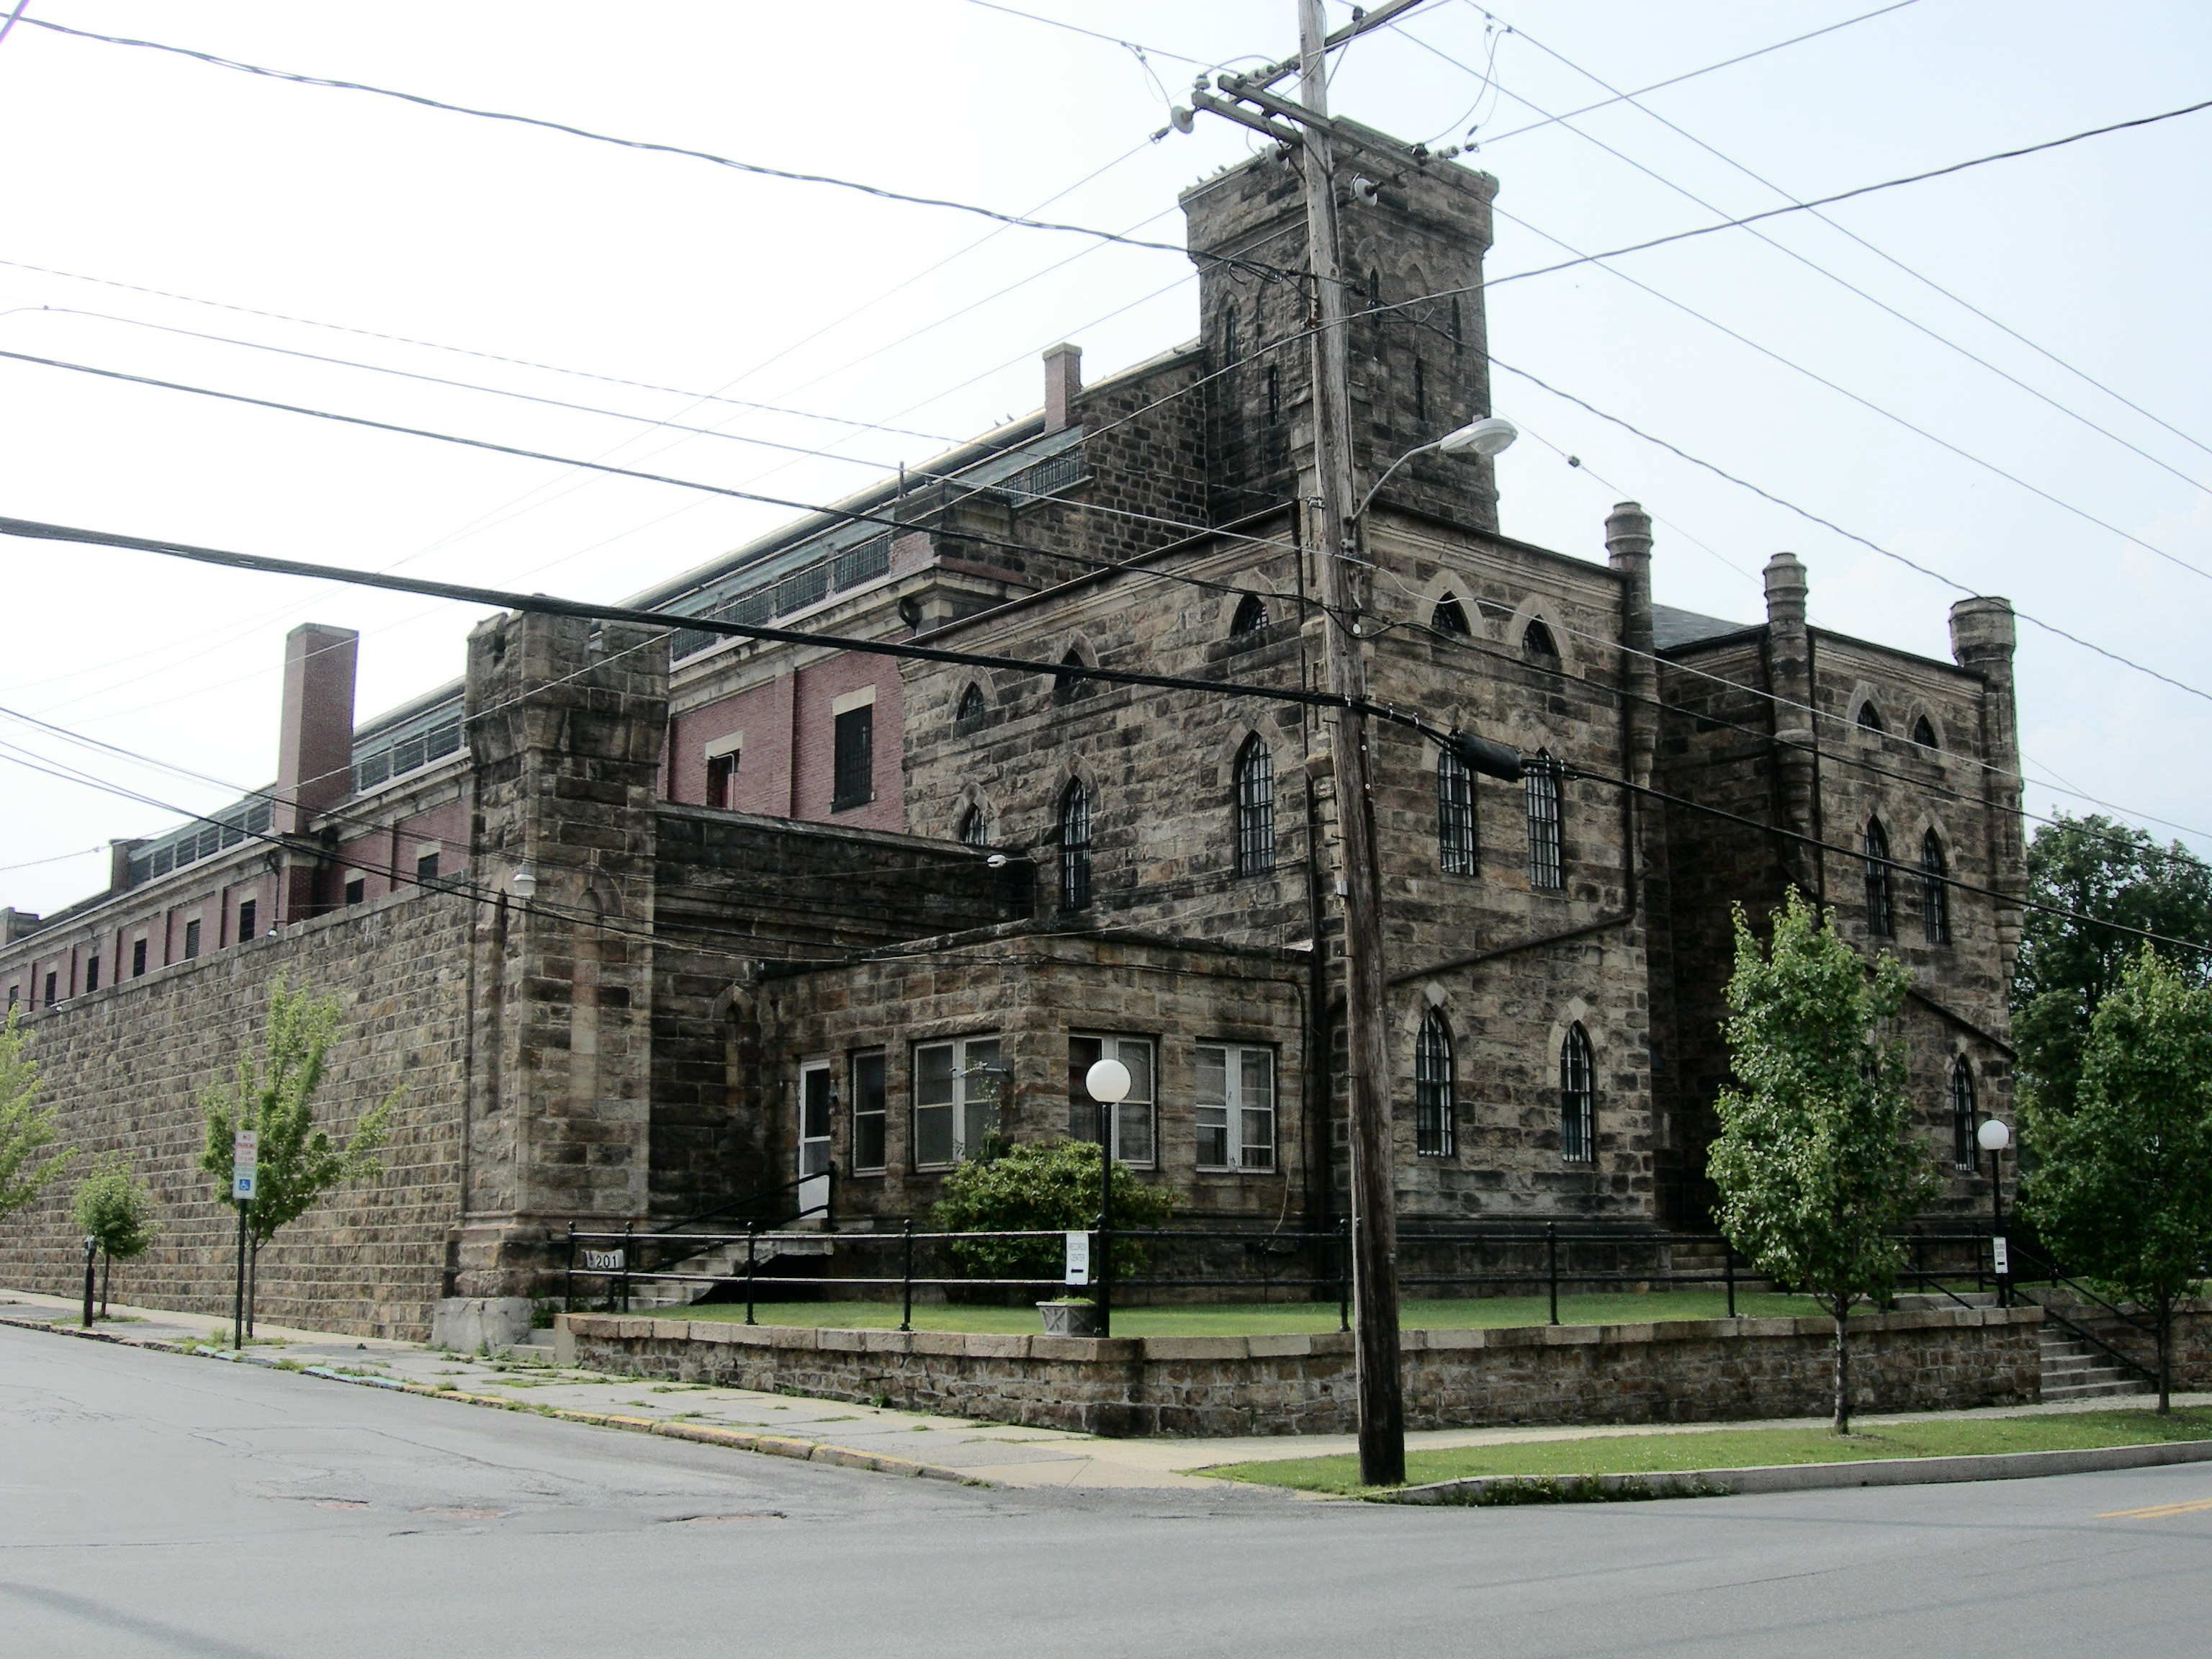 The Old Lycoming County Jail has occupied this location since 1868.